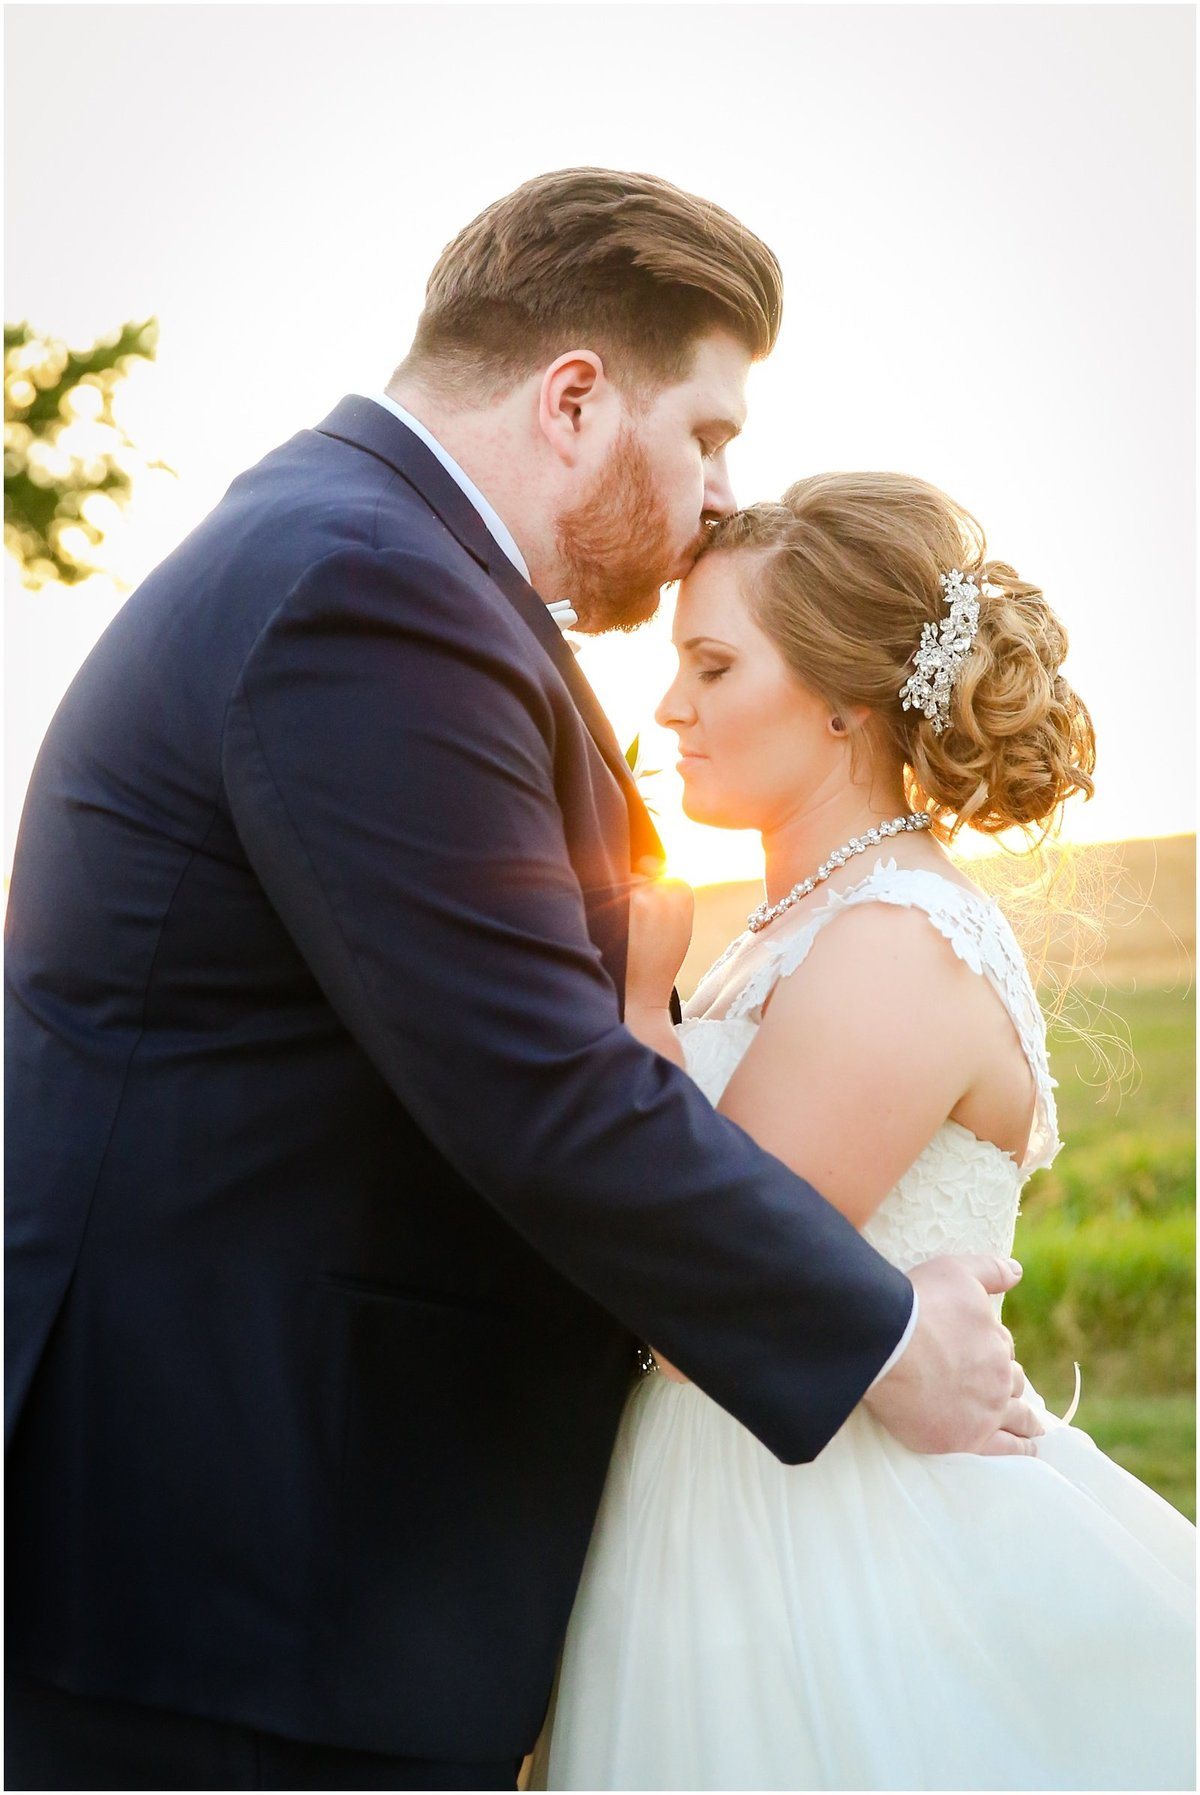 Illinois Portrait Photographer | Macomb, IL | Creative Touch Photography_0406